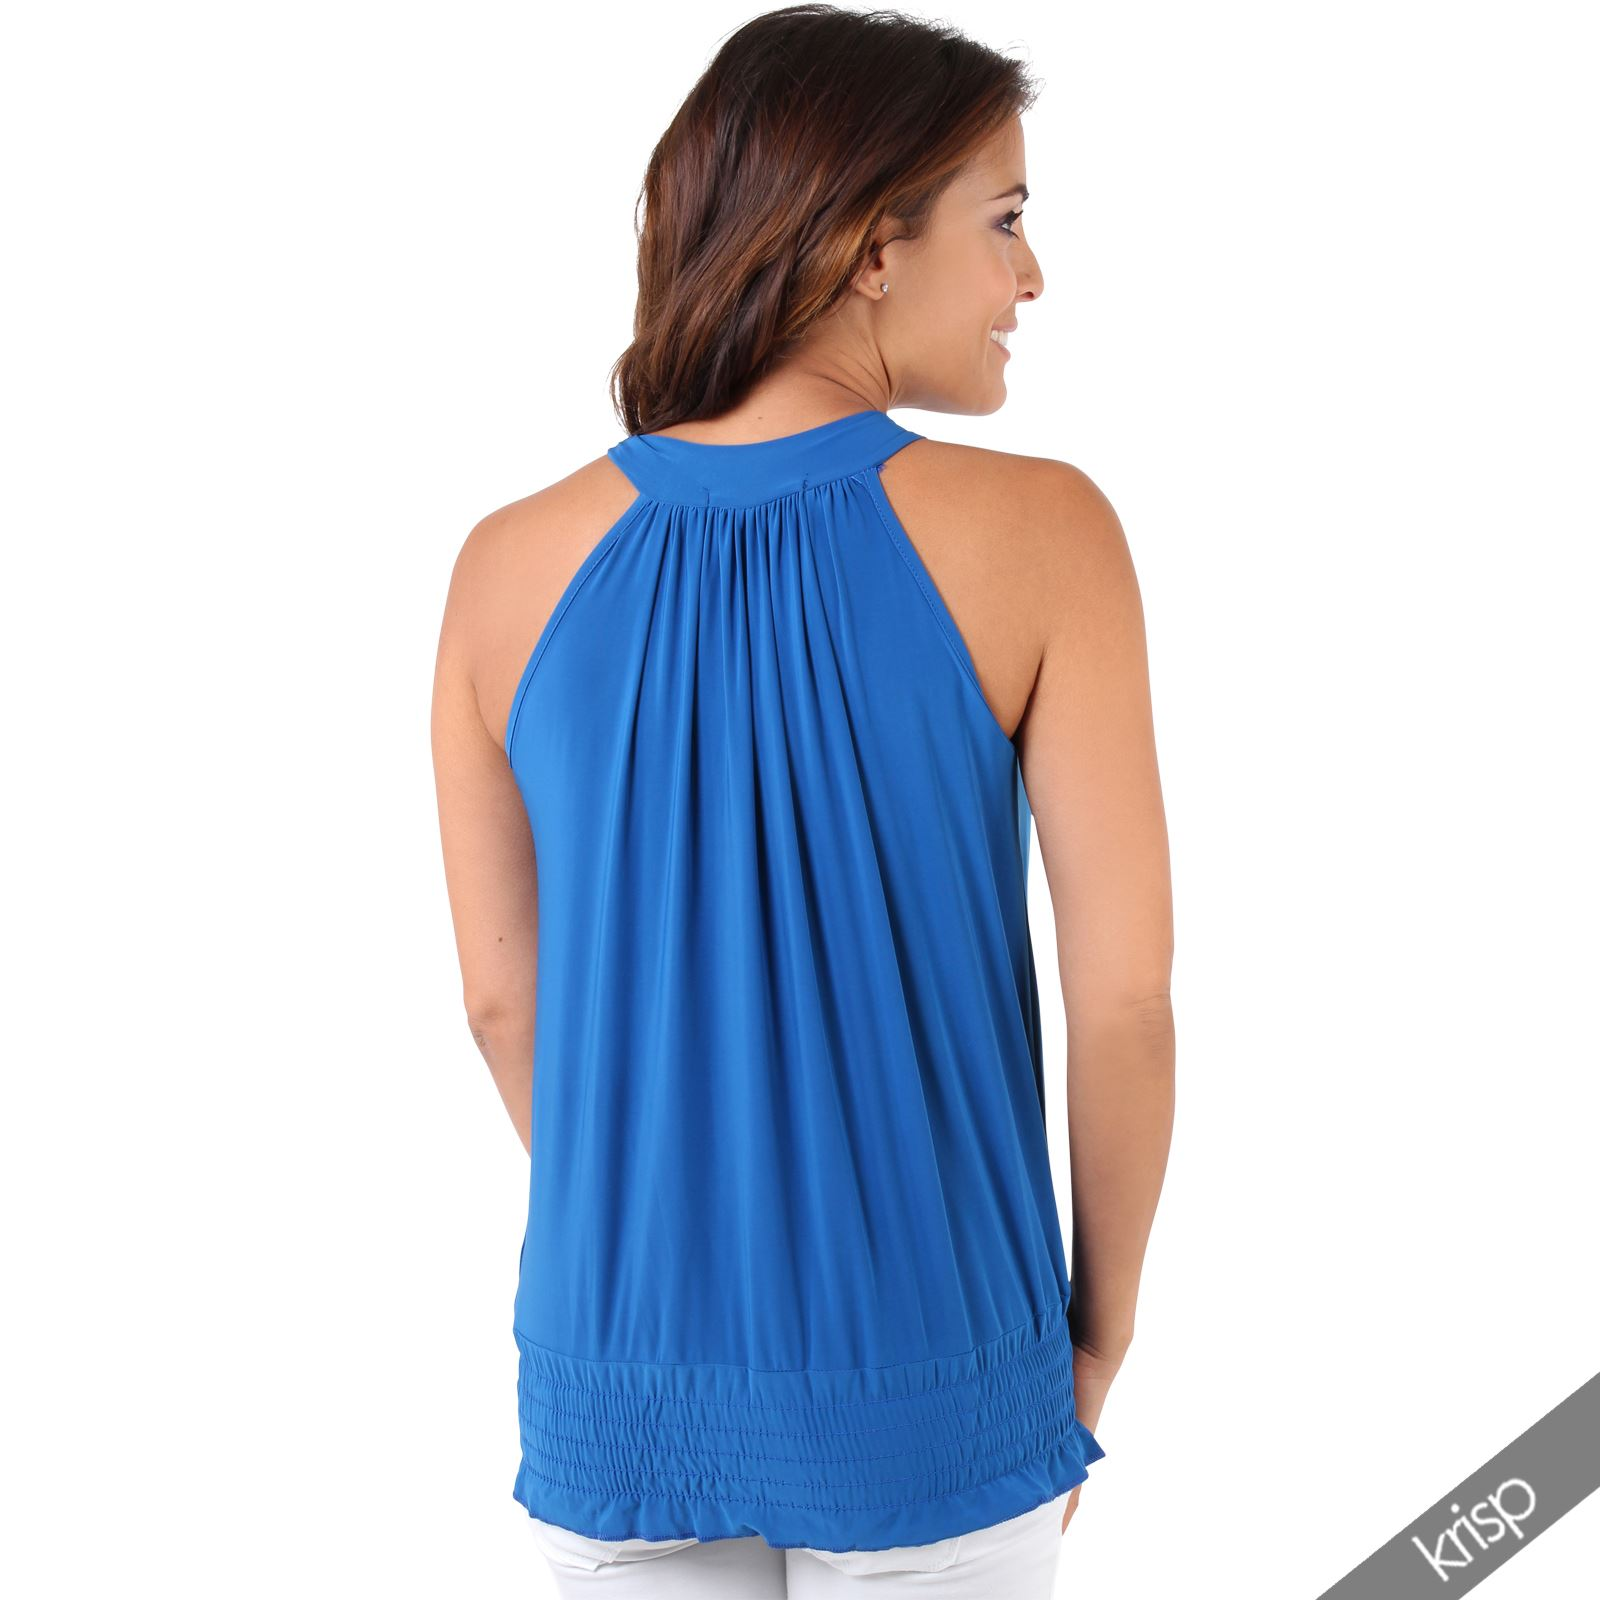 Womens-Ladies-Sleeveless-Blouse-Halter-Neck-Vest-Top-Party-T-Shirt-Plus-Size thumbnail 20